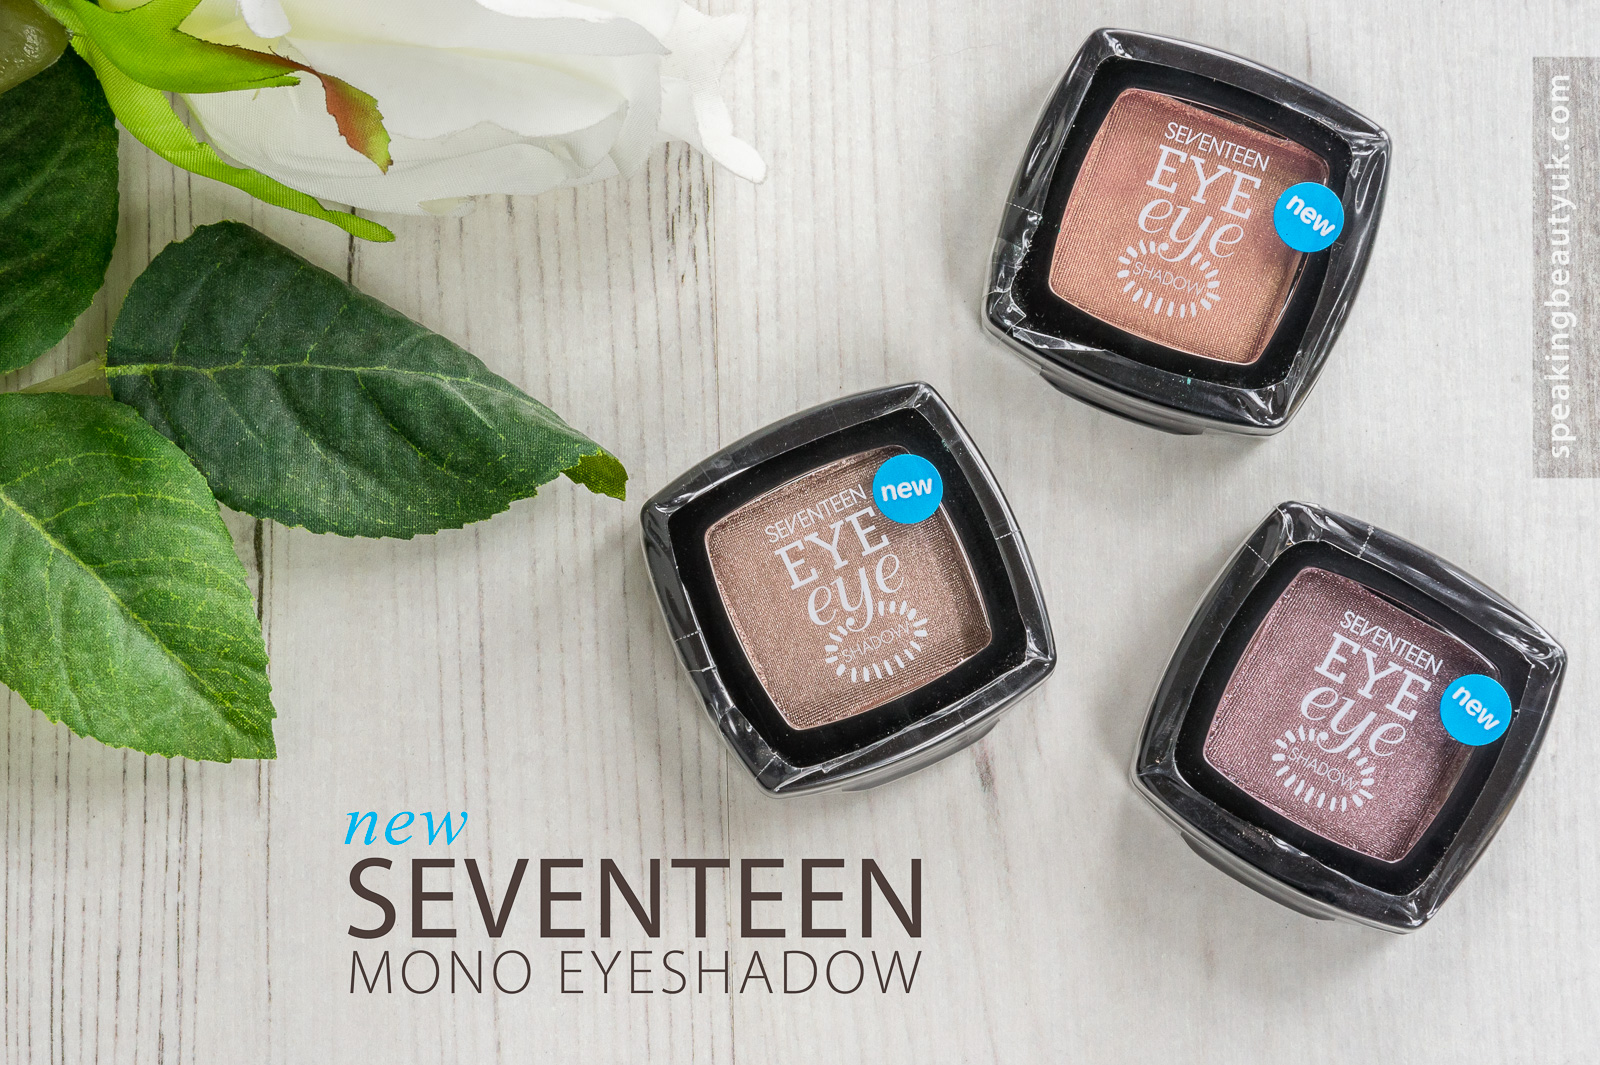 Seventeen Mono Eyeshadows Statuesque, Funfair & Rose Quartz